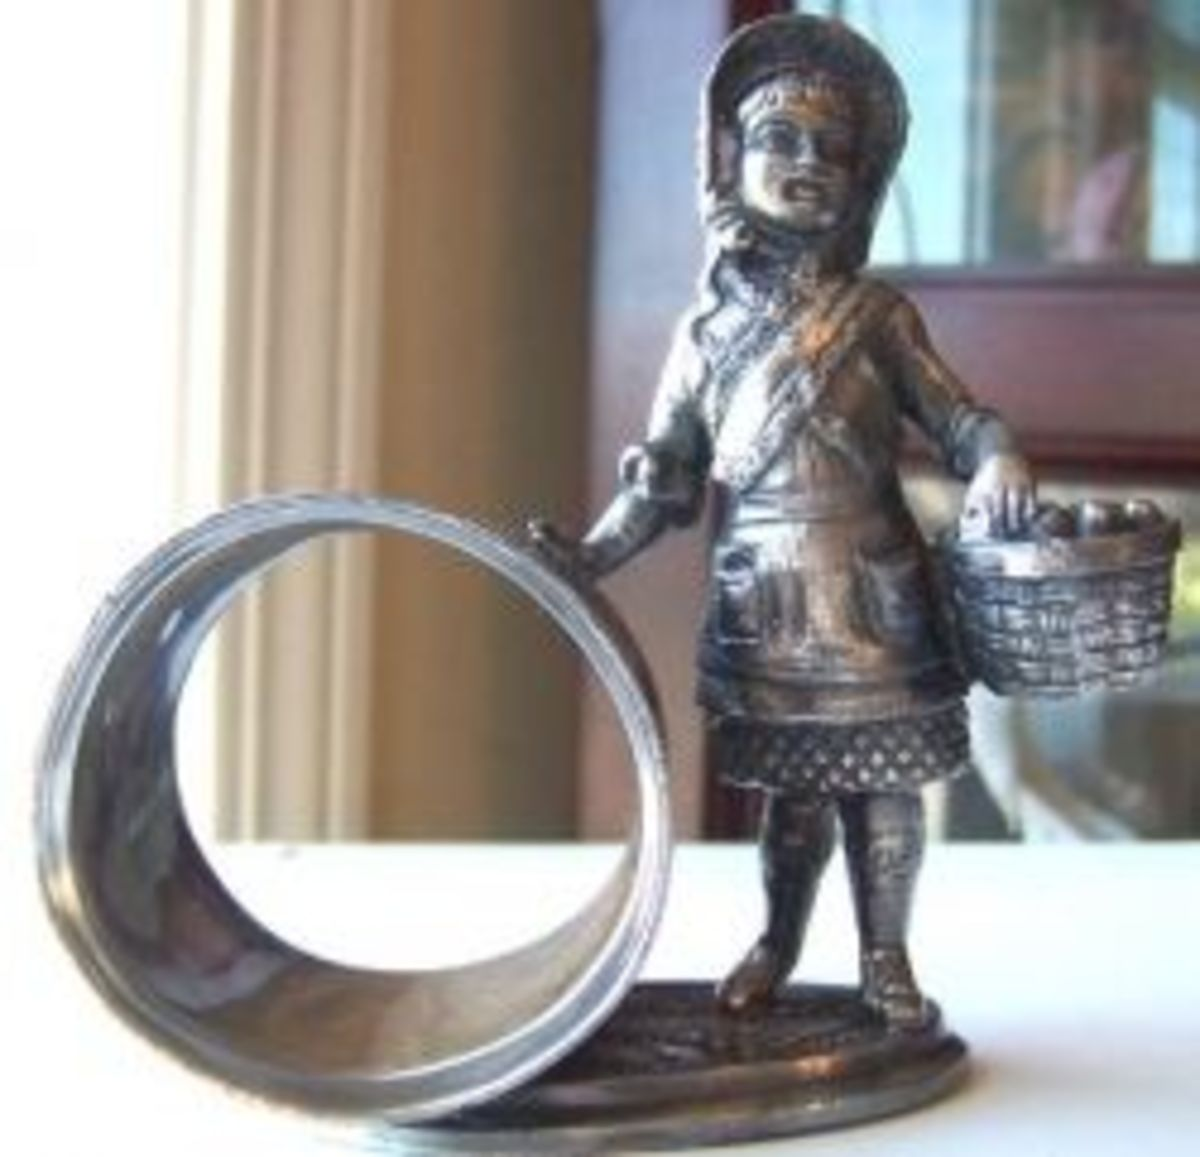 Victorian Figural Silverplate Napkin Rings: Faked or Real?